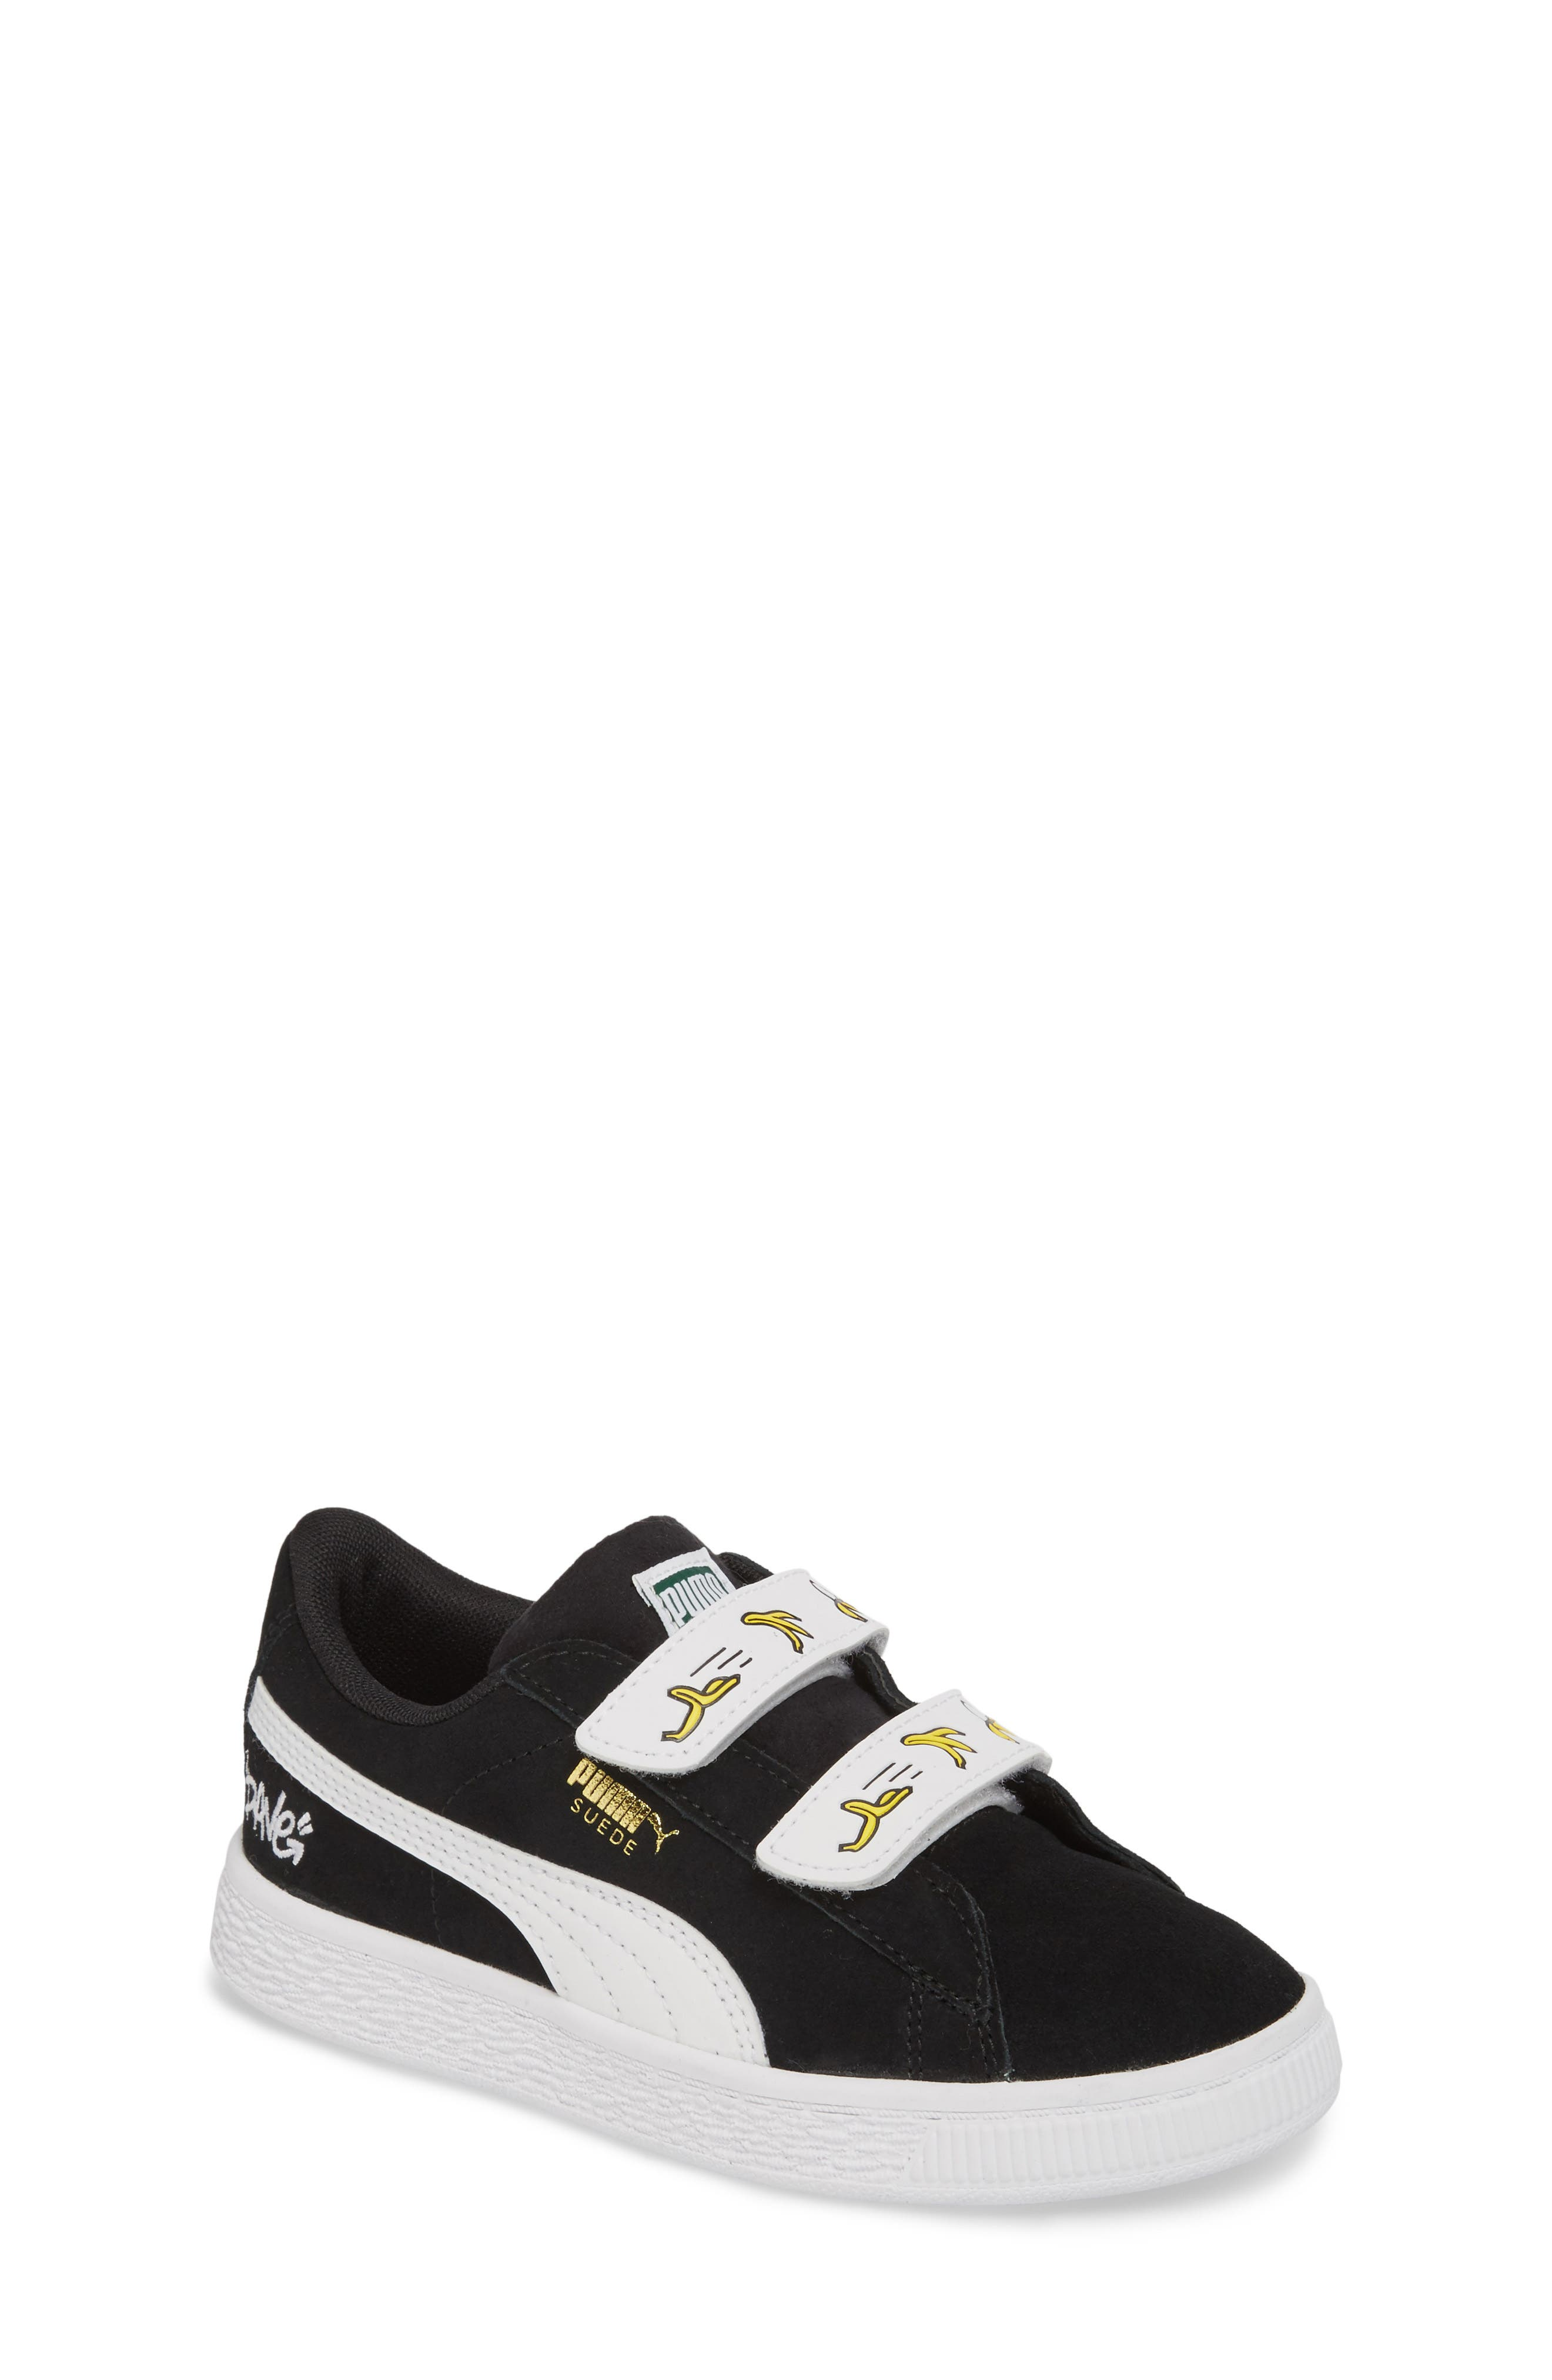 x Minions Suede V Sneaker,                             Main thumbnail 1, color,                             001